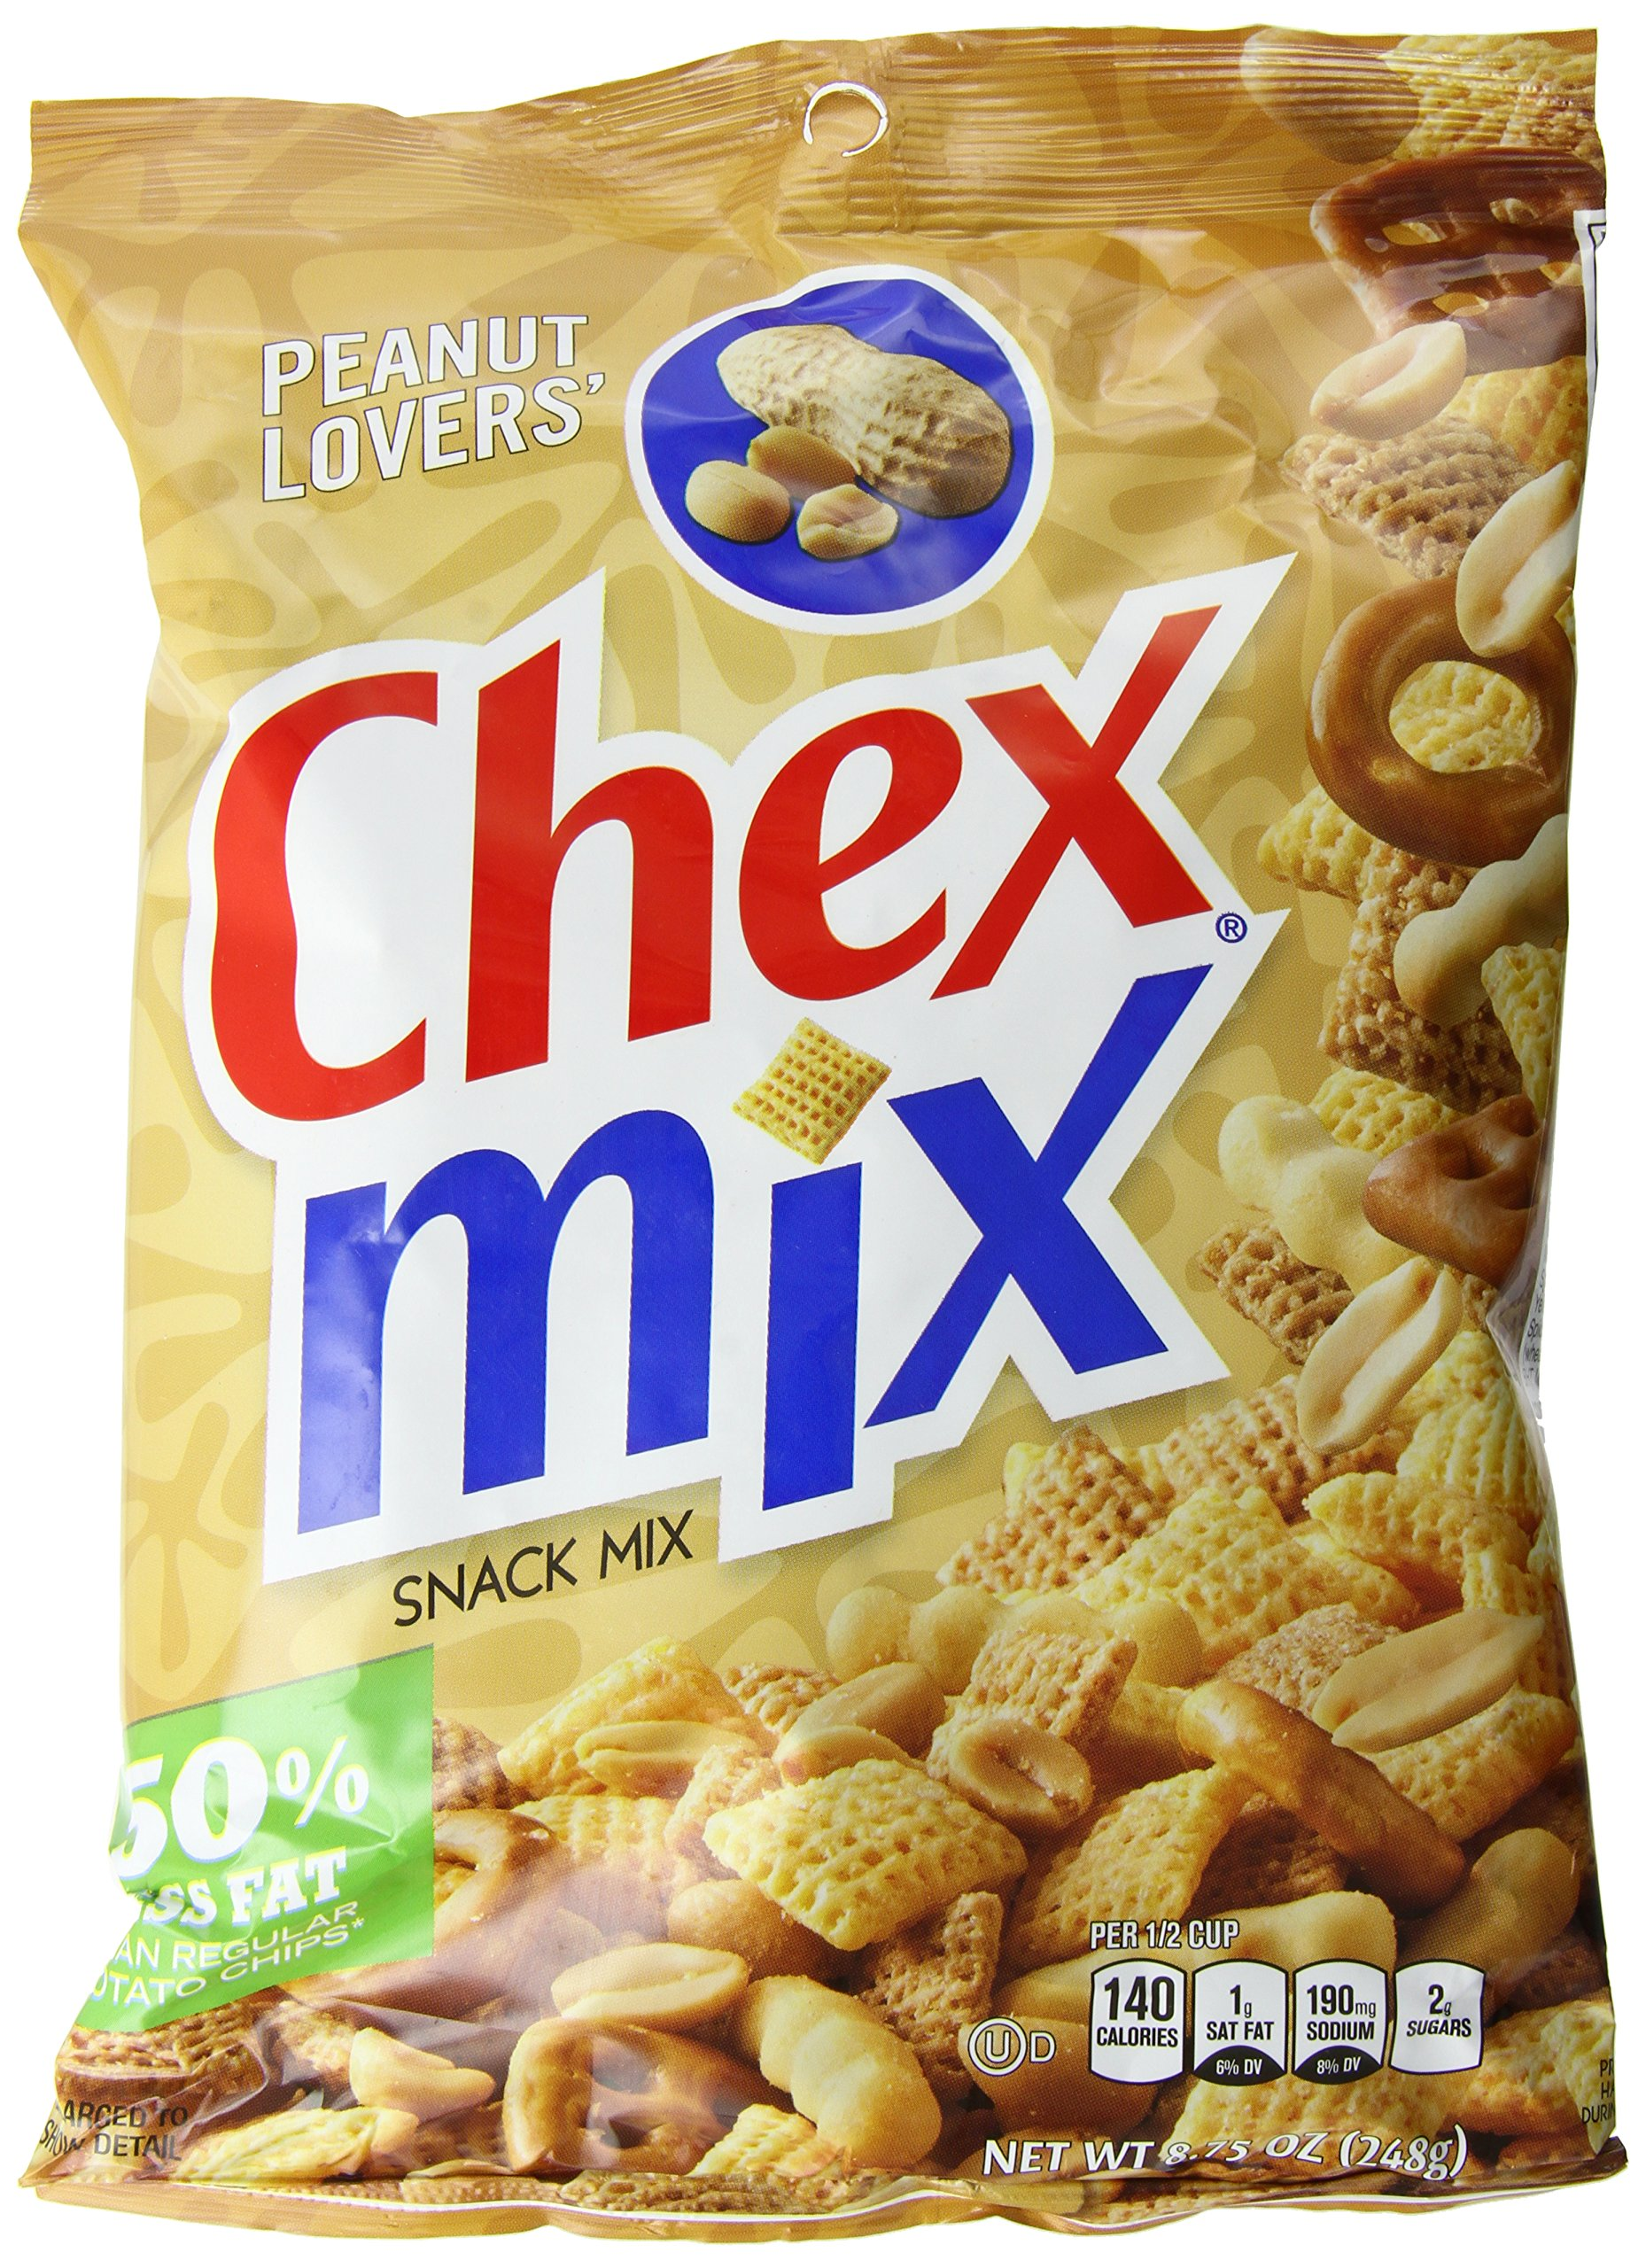 Chex Mix Peanut Lovers' Snack Mix 8.75 oz. Bag